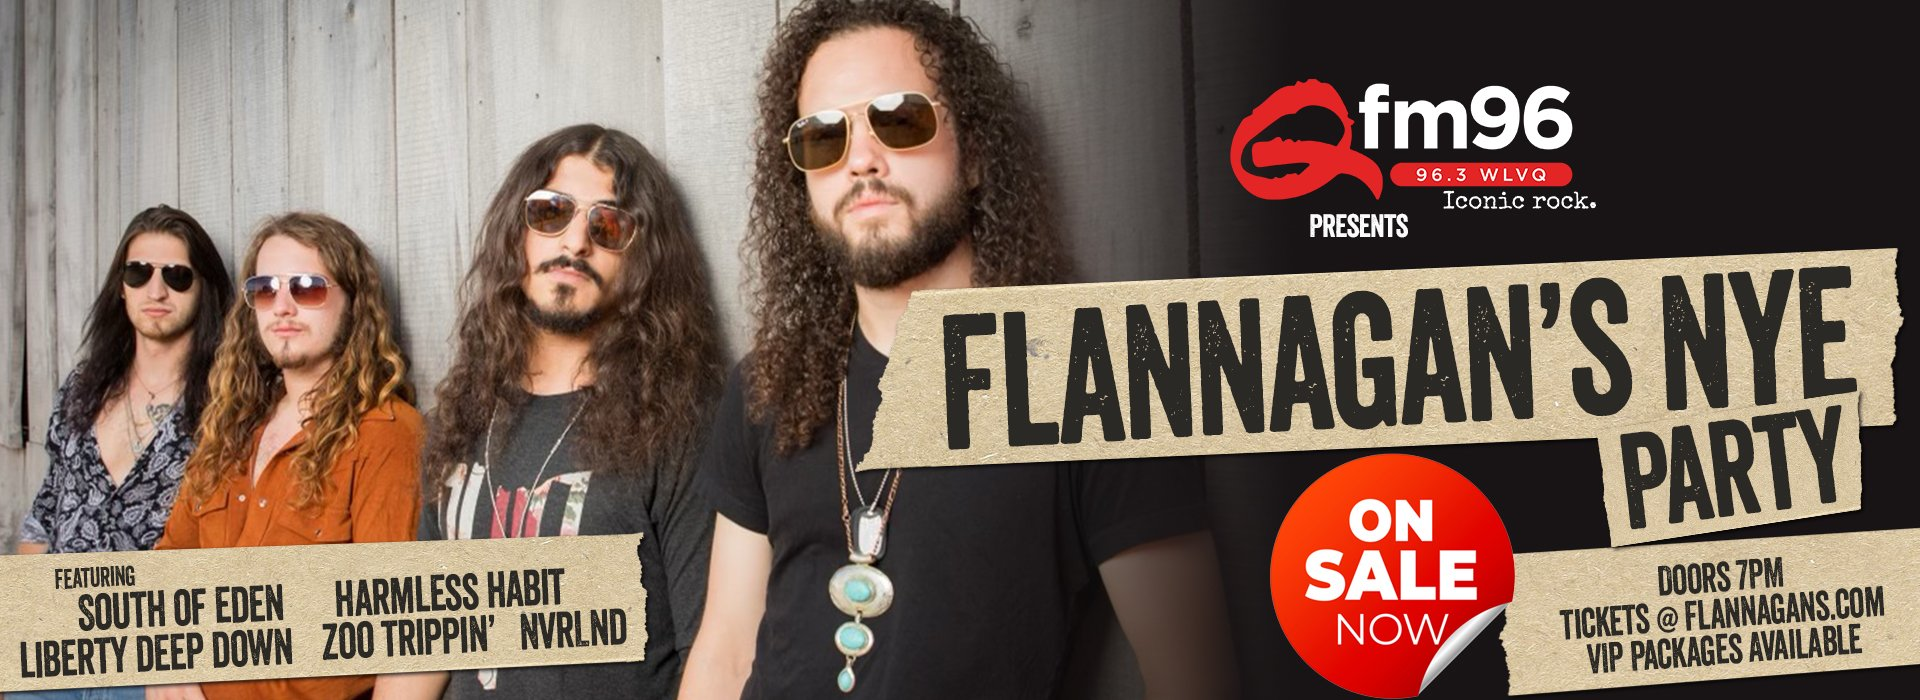 Qfm presents Flannagan's NYE Party with South of Eden and more!